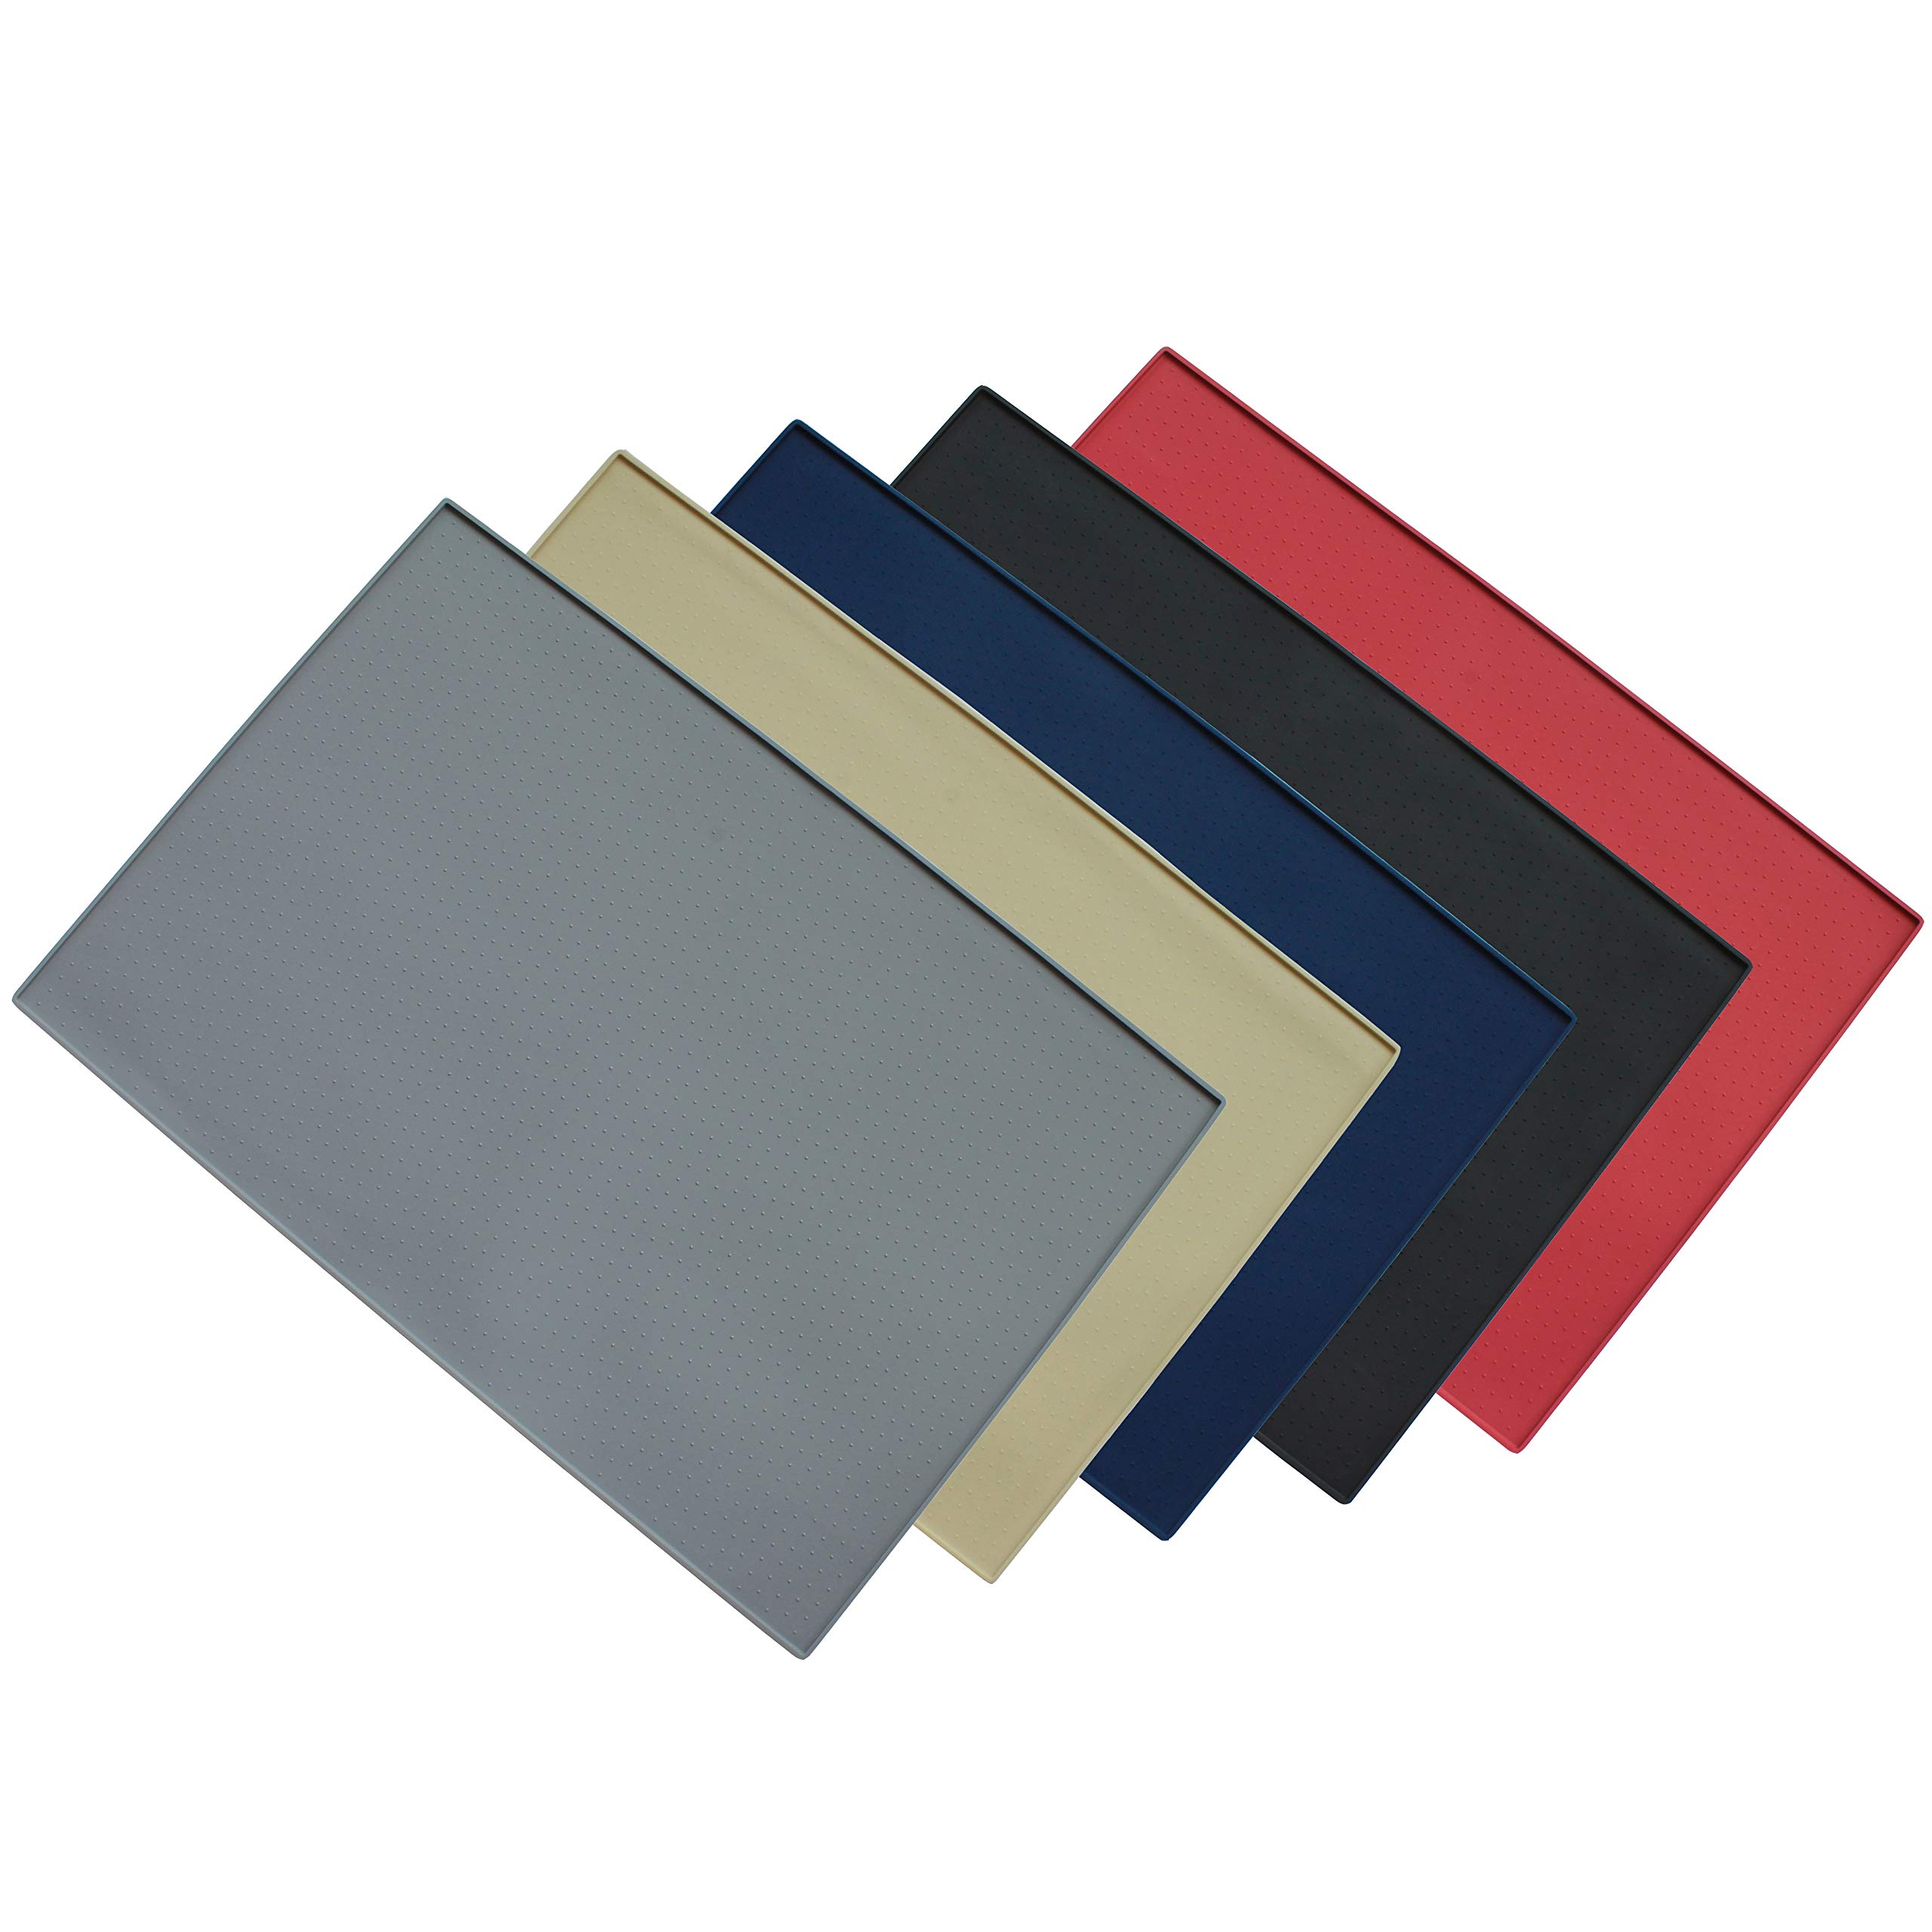 Hiado Dog Bowl Mat Raised Edges Non Skid Spill Proof Large Waterproof Silicone for The Floor 24x16 Inch Grey